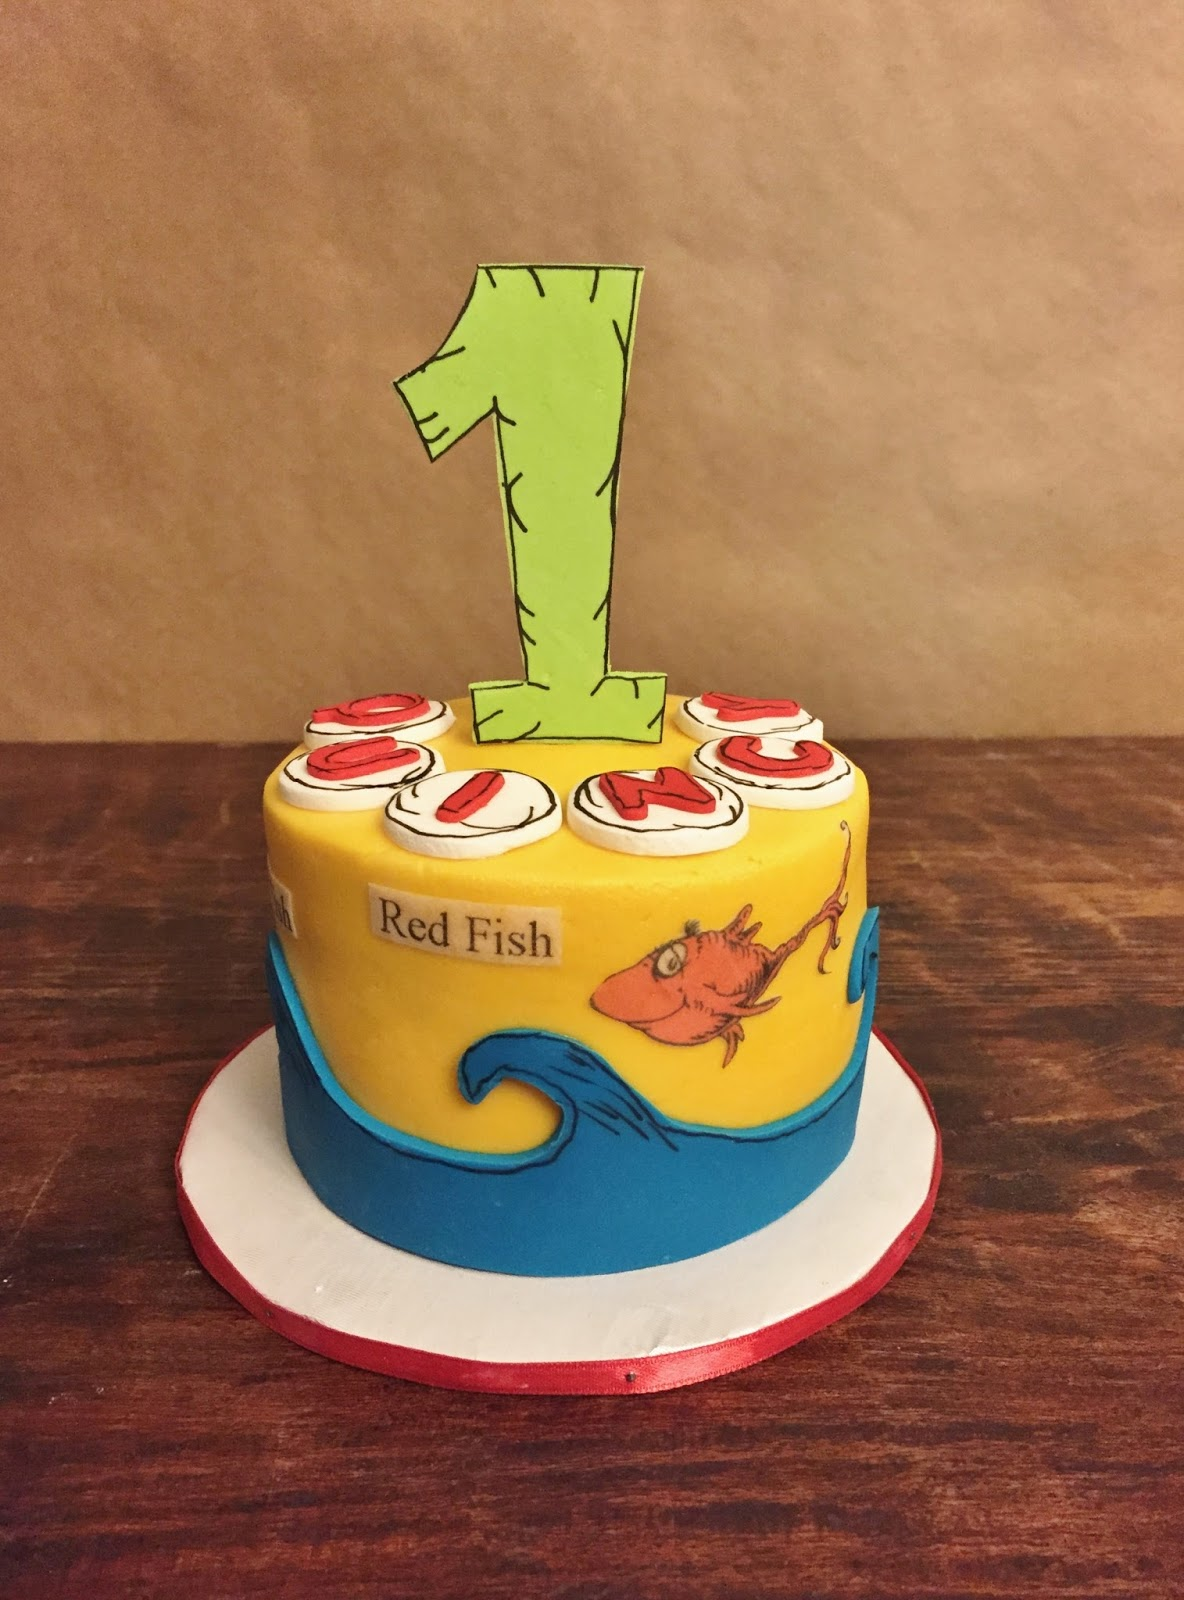 Cakes By Mindy Dr Seuss Smash Cake 4 Quot And Caupcakes